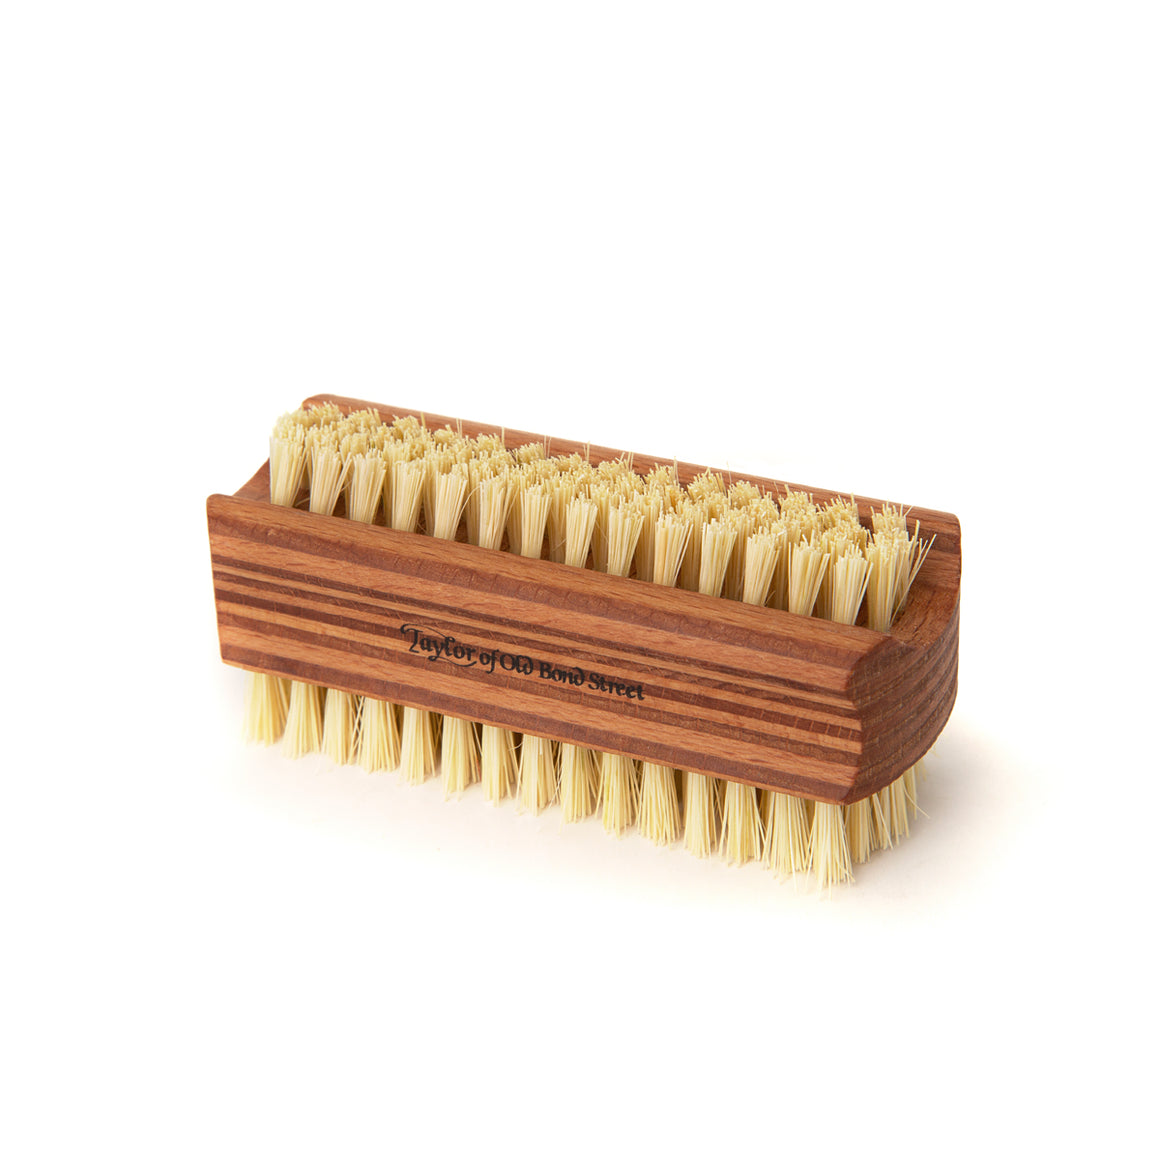 Medium Plywood Cactus Bristle Nail Brush